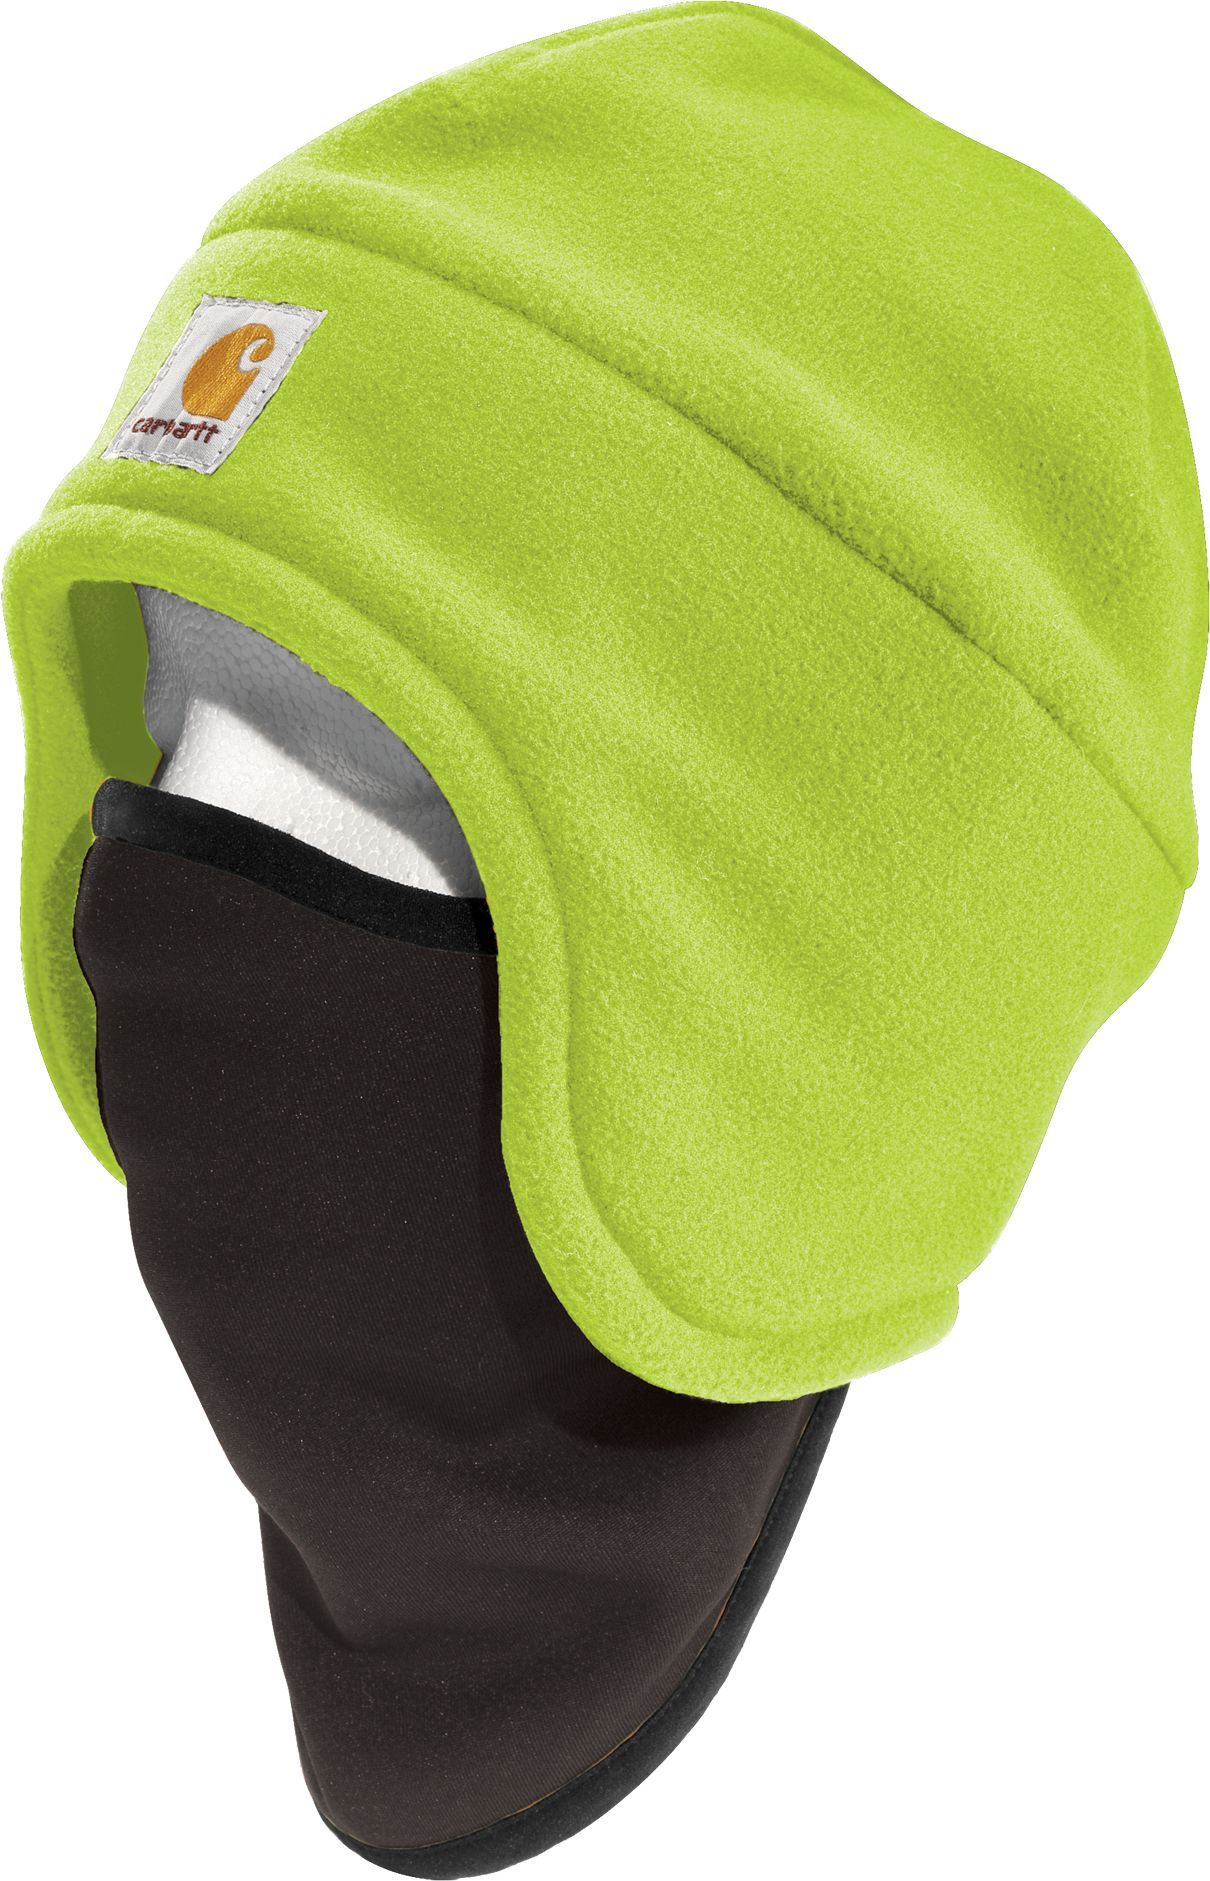 7c8e580dae7 Carhartt Men s High-Visibility Color Enhanced Fleece 2-in-1 Hat in ...